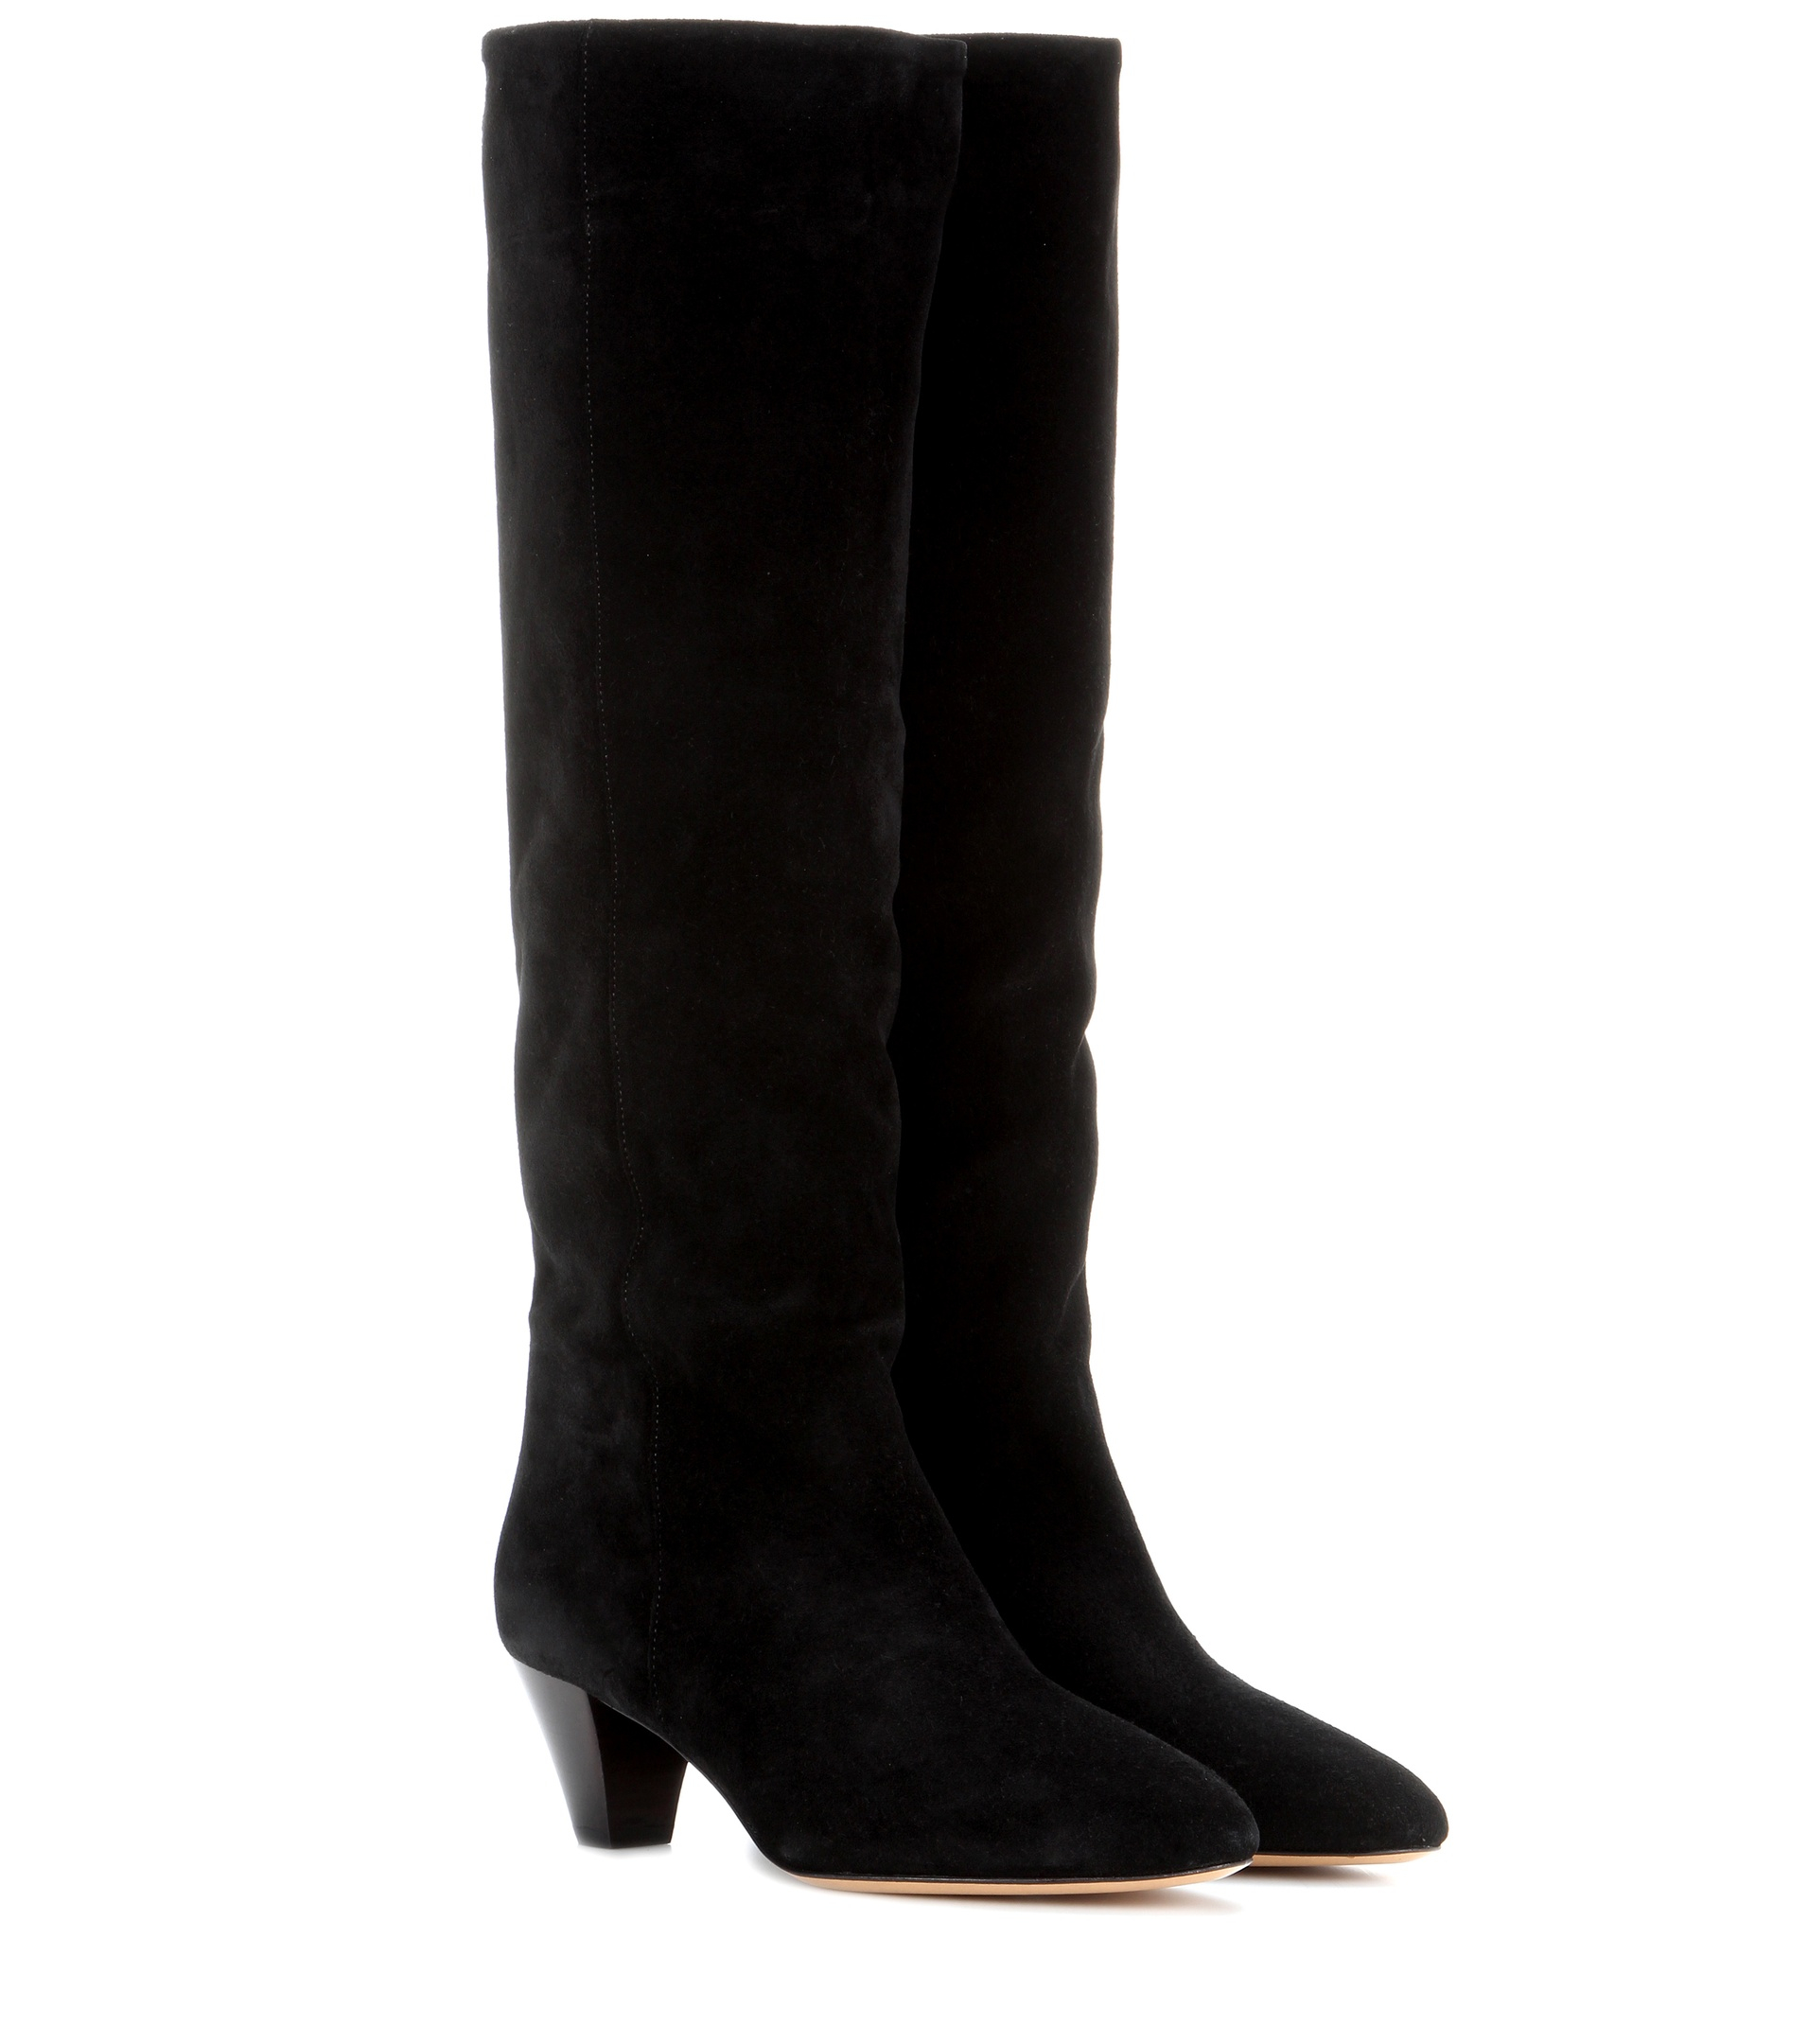 isabel marant toile robby suede knee high boots in black lyst. Black Bedroom Furniture Sets. Home Design Ideas